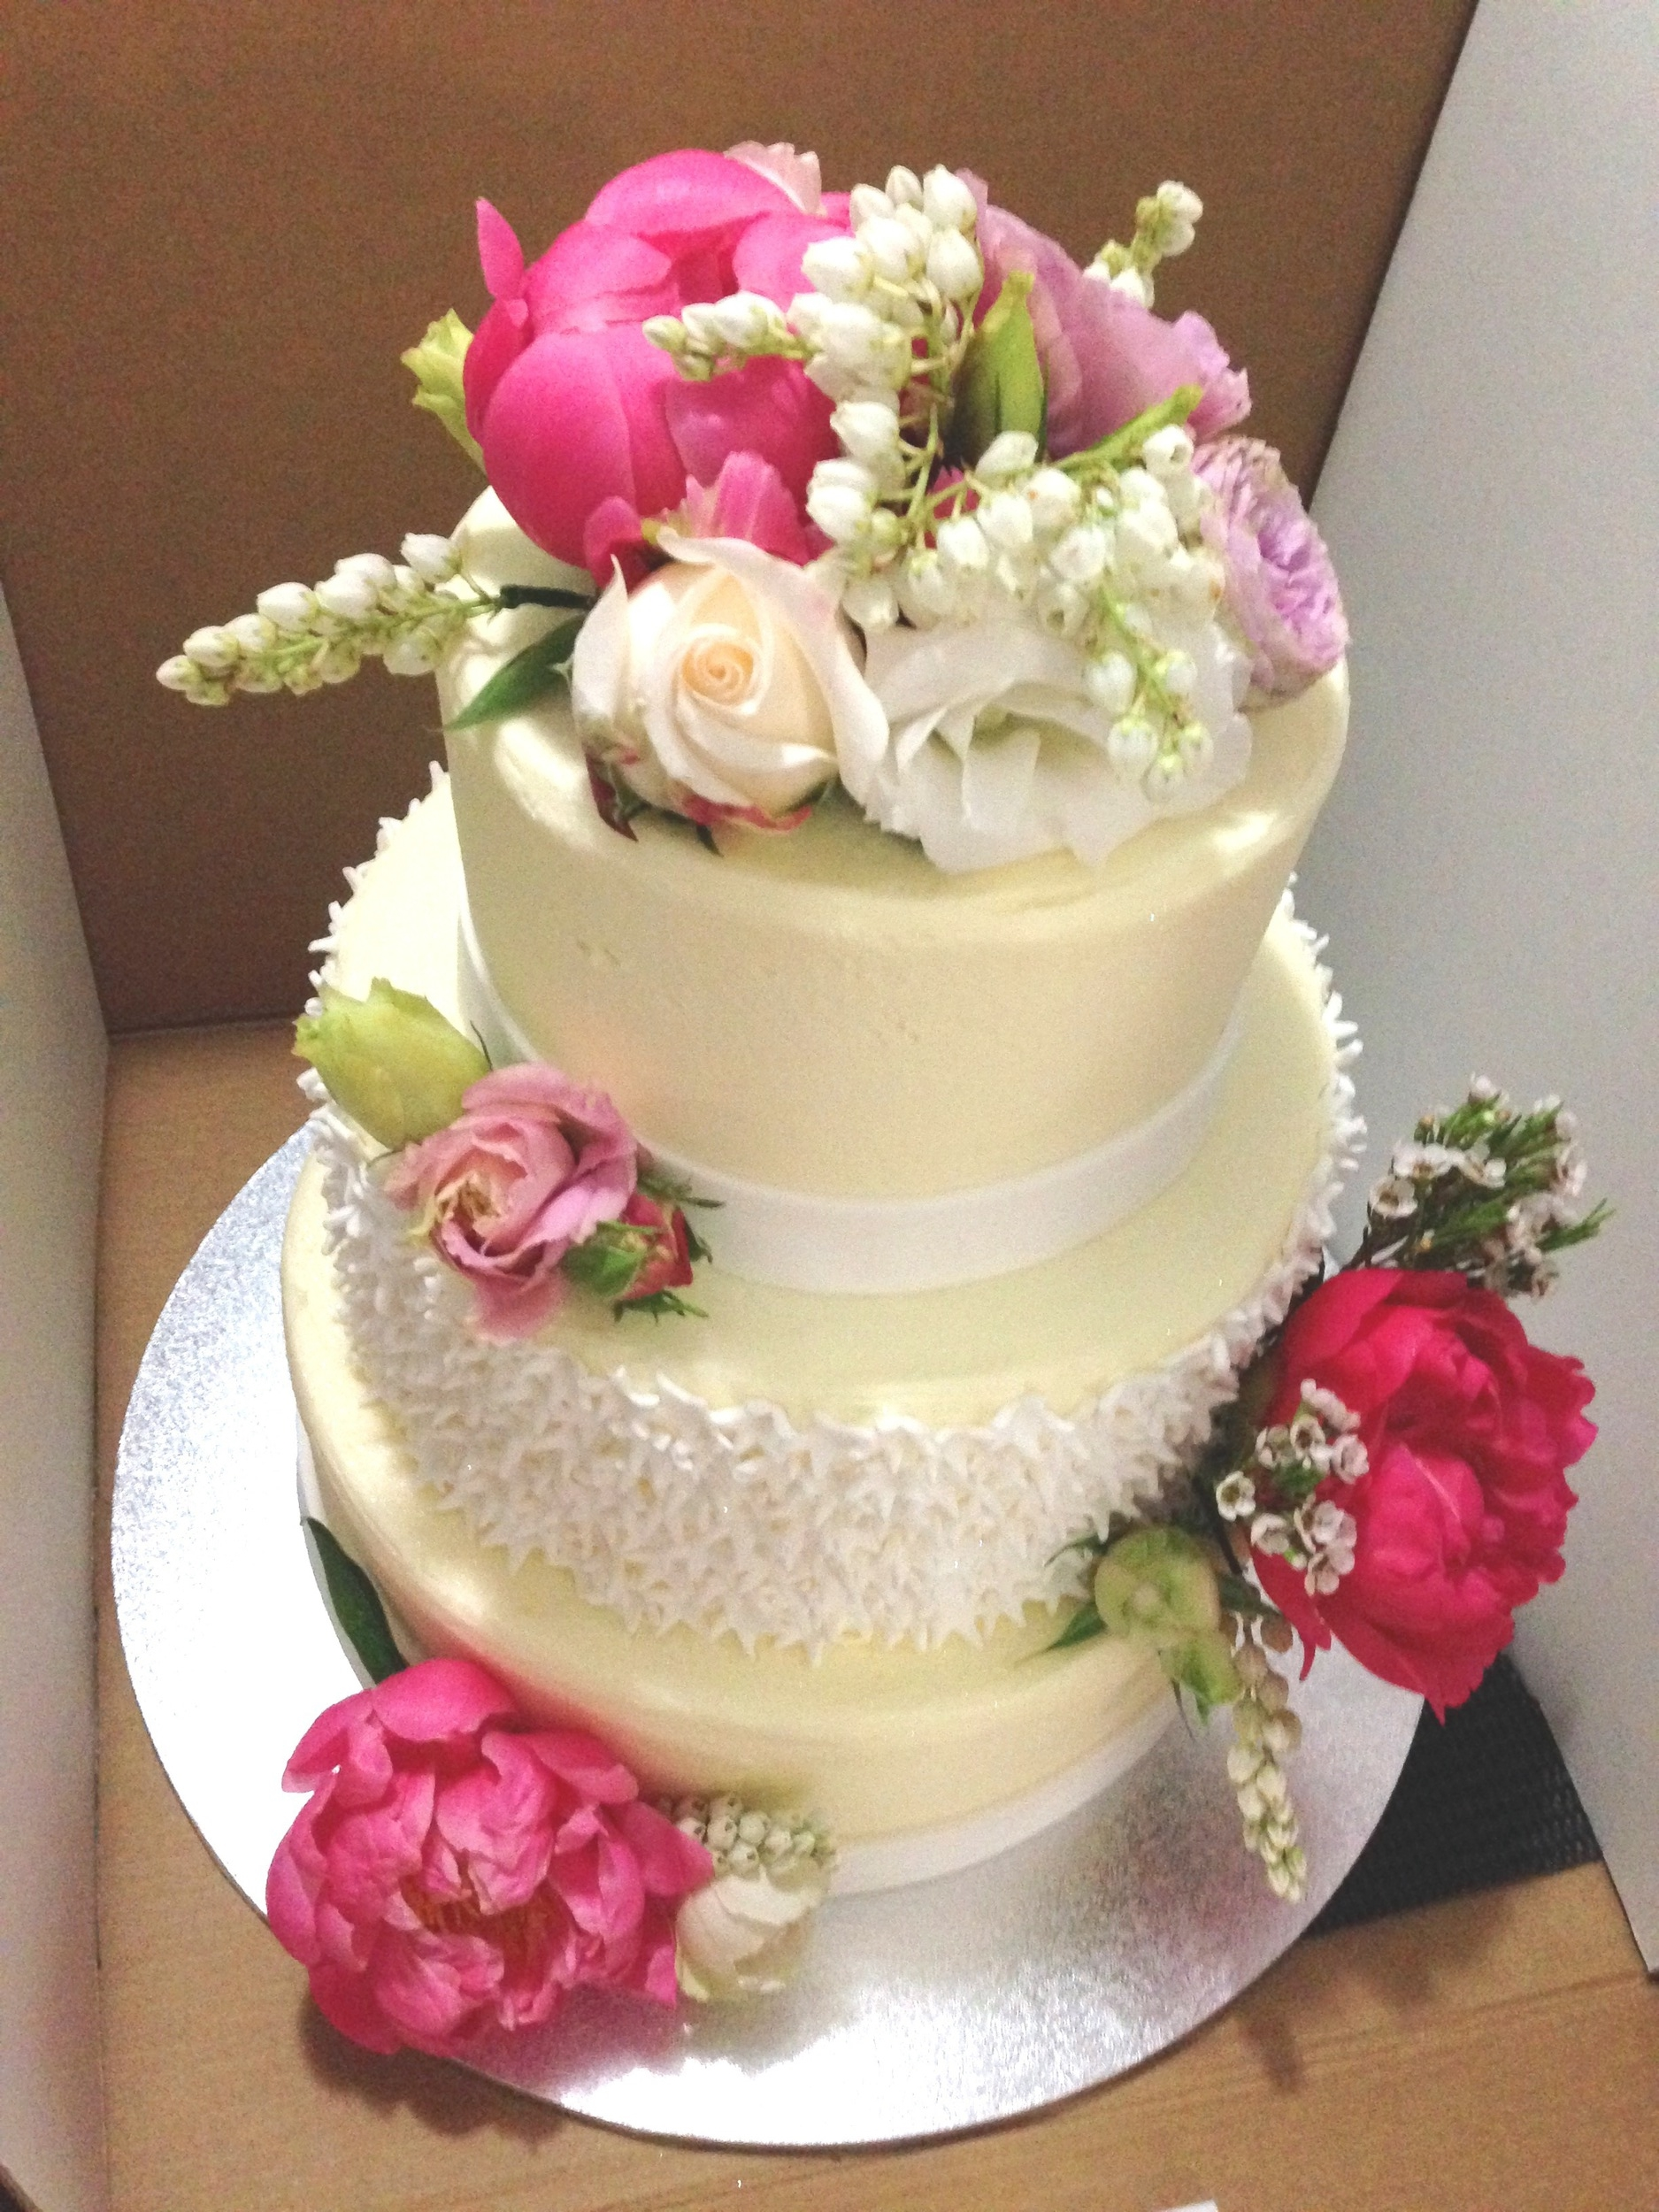 Vanilla Pod 3 tier frosting cake with florals by Bouquet Boutique.JPG